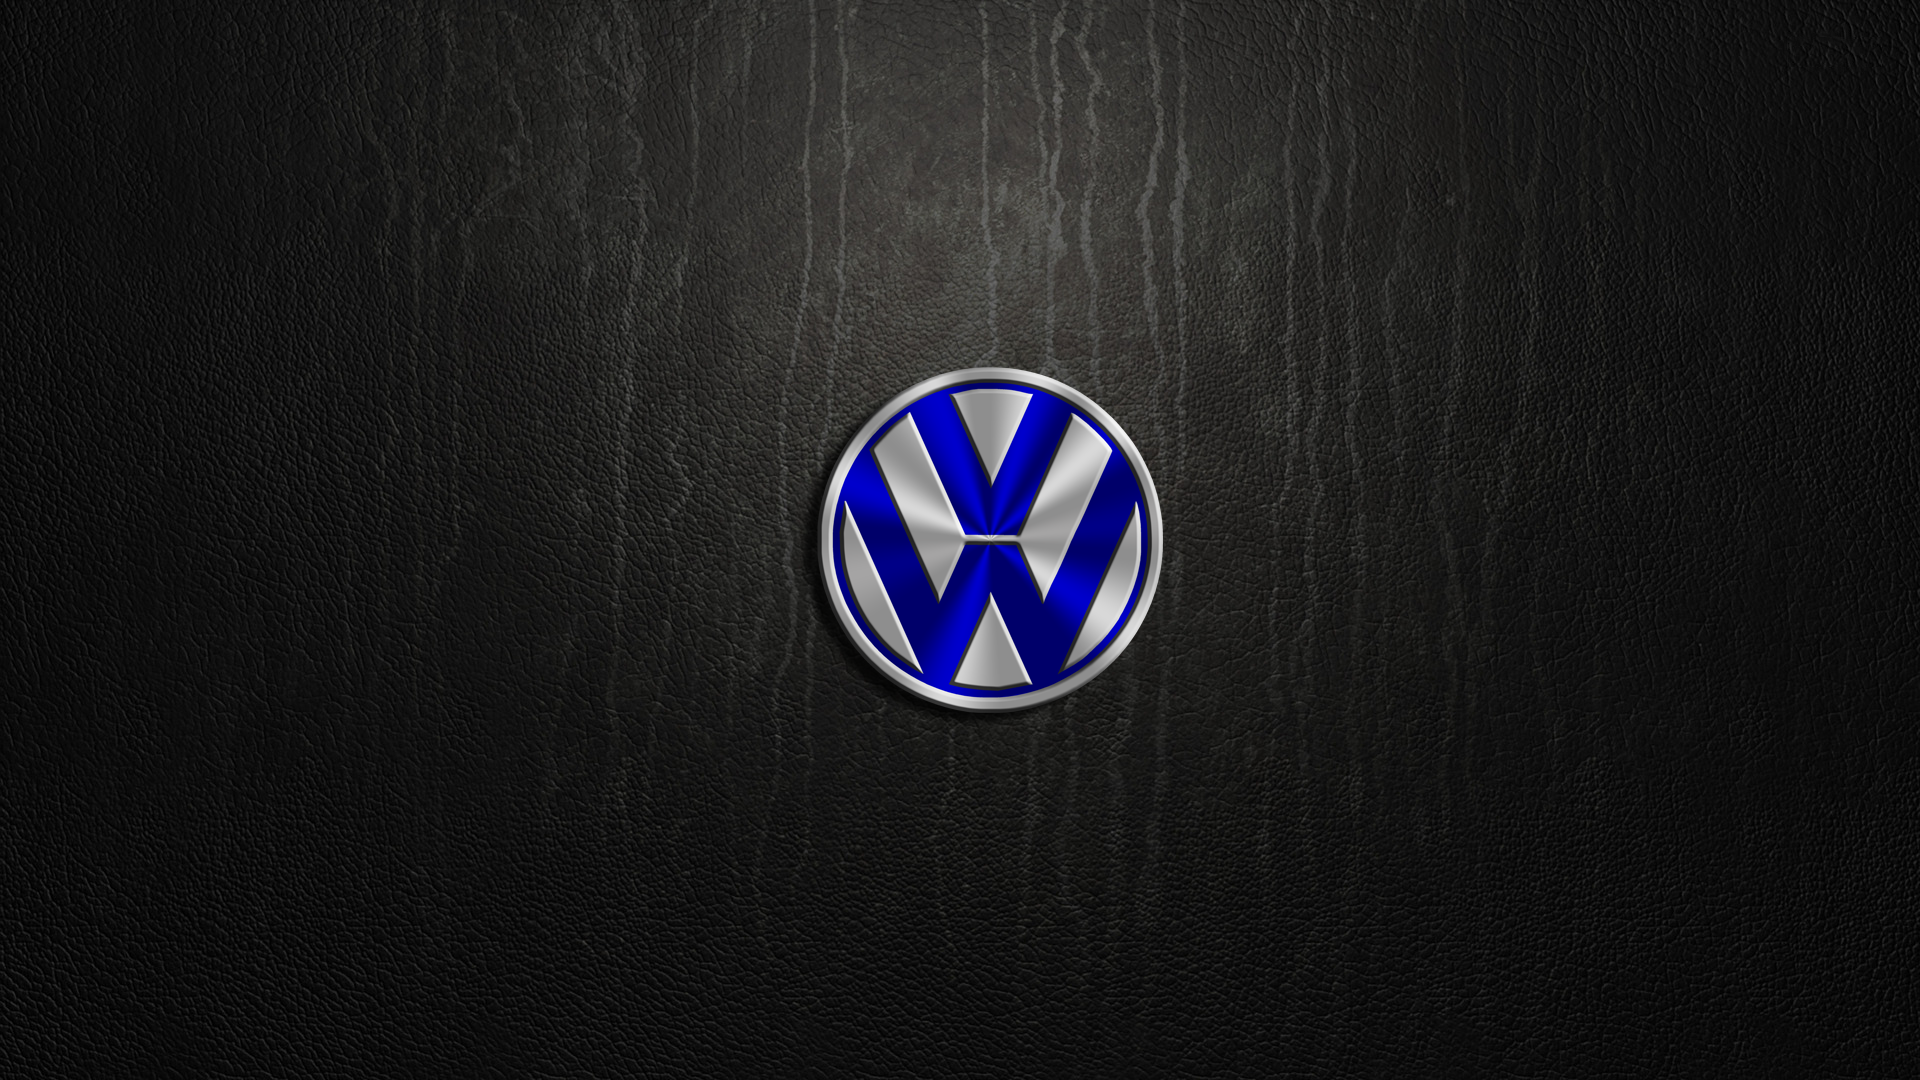 Wonderful VW Wallpaper - thumb-1920-400499  Graphic_854584.png